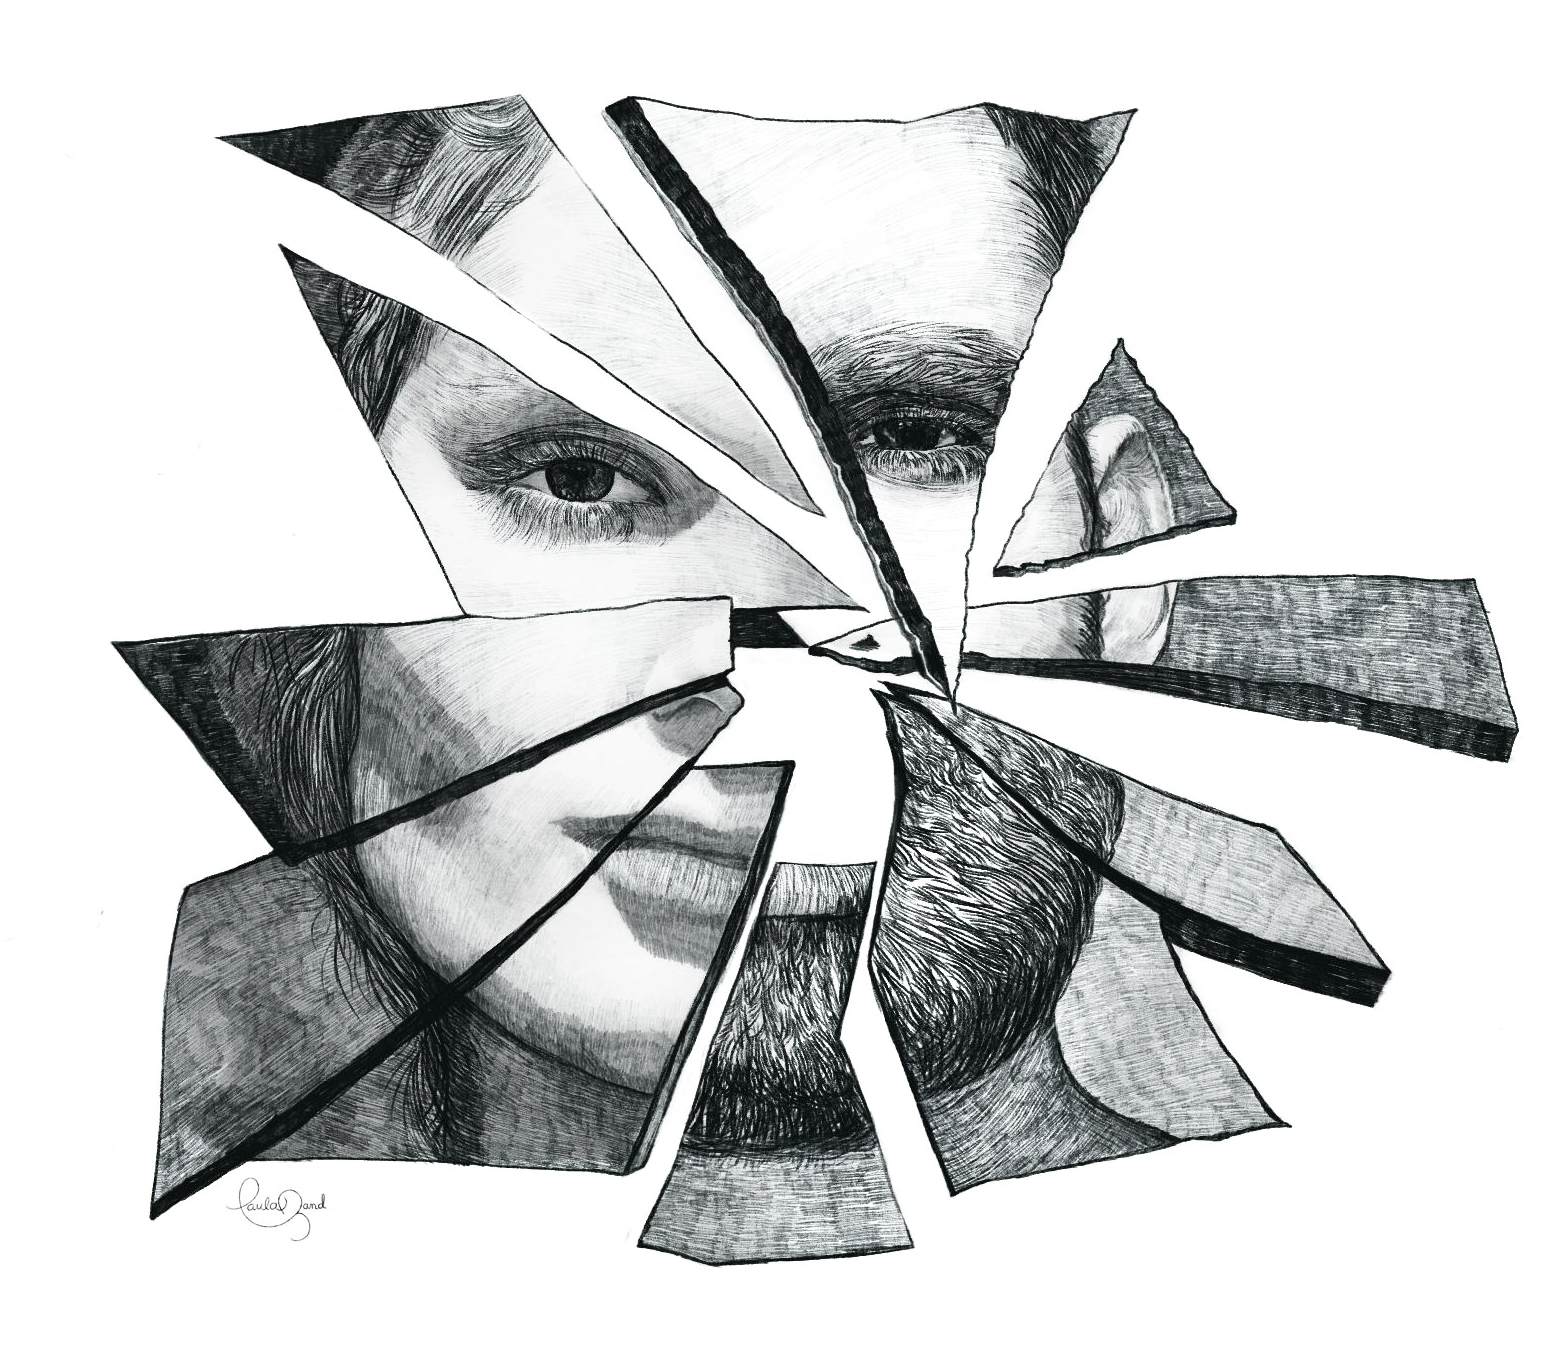 ART/ILLUSTRATION - Creative and inspiring projects in black and white.